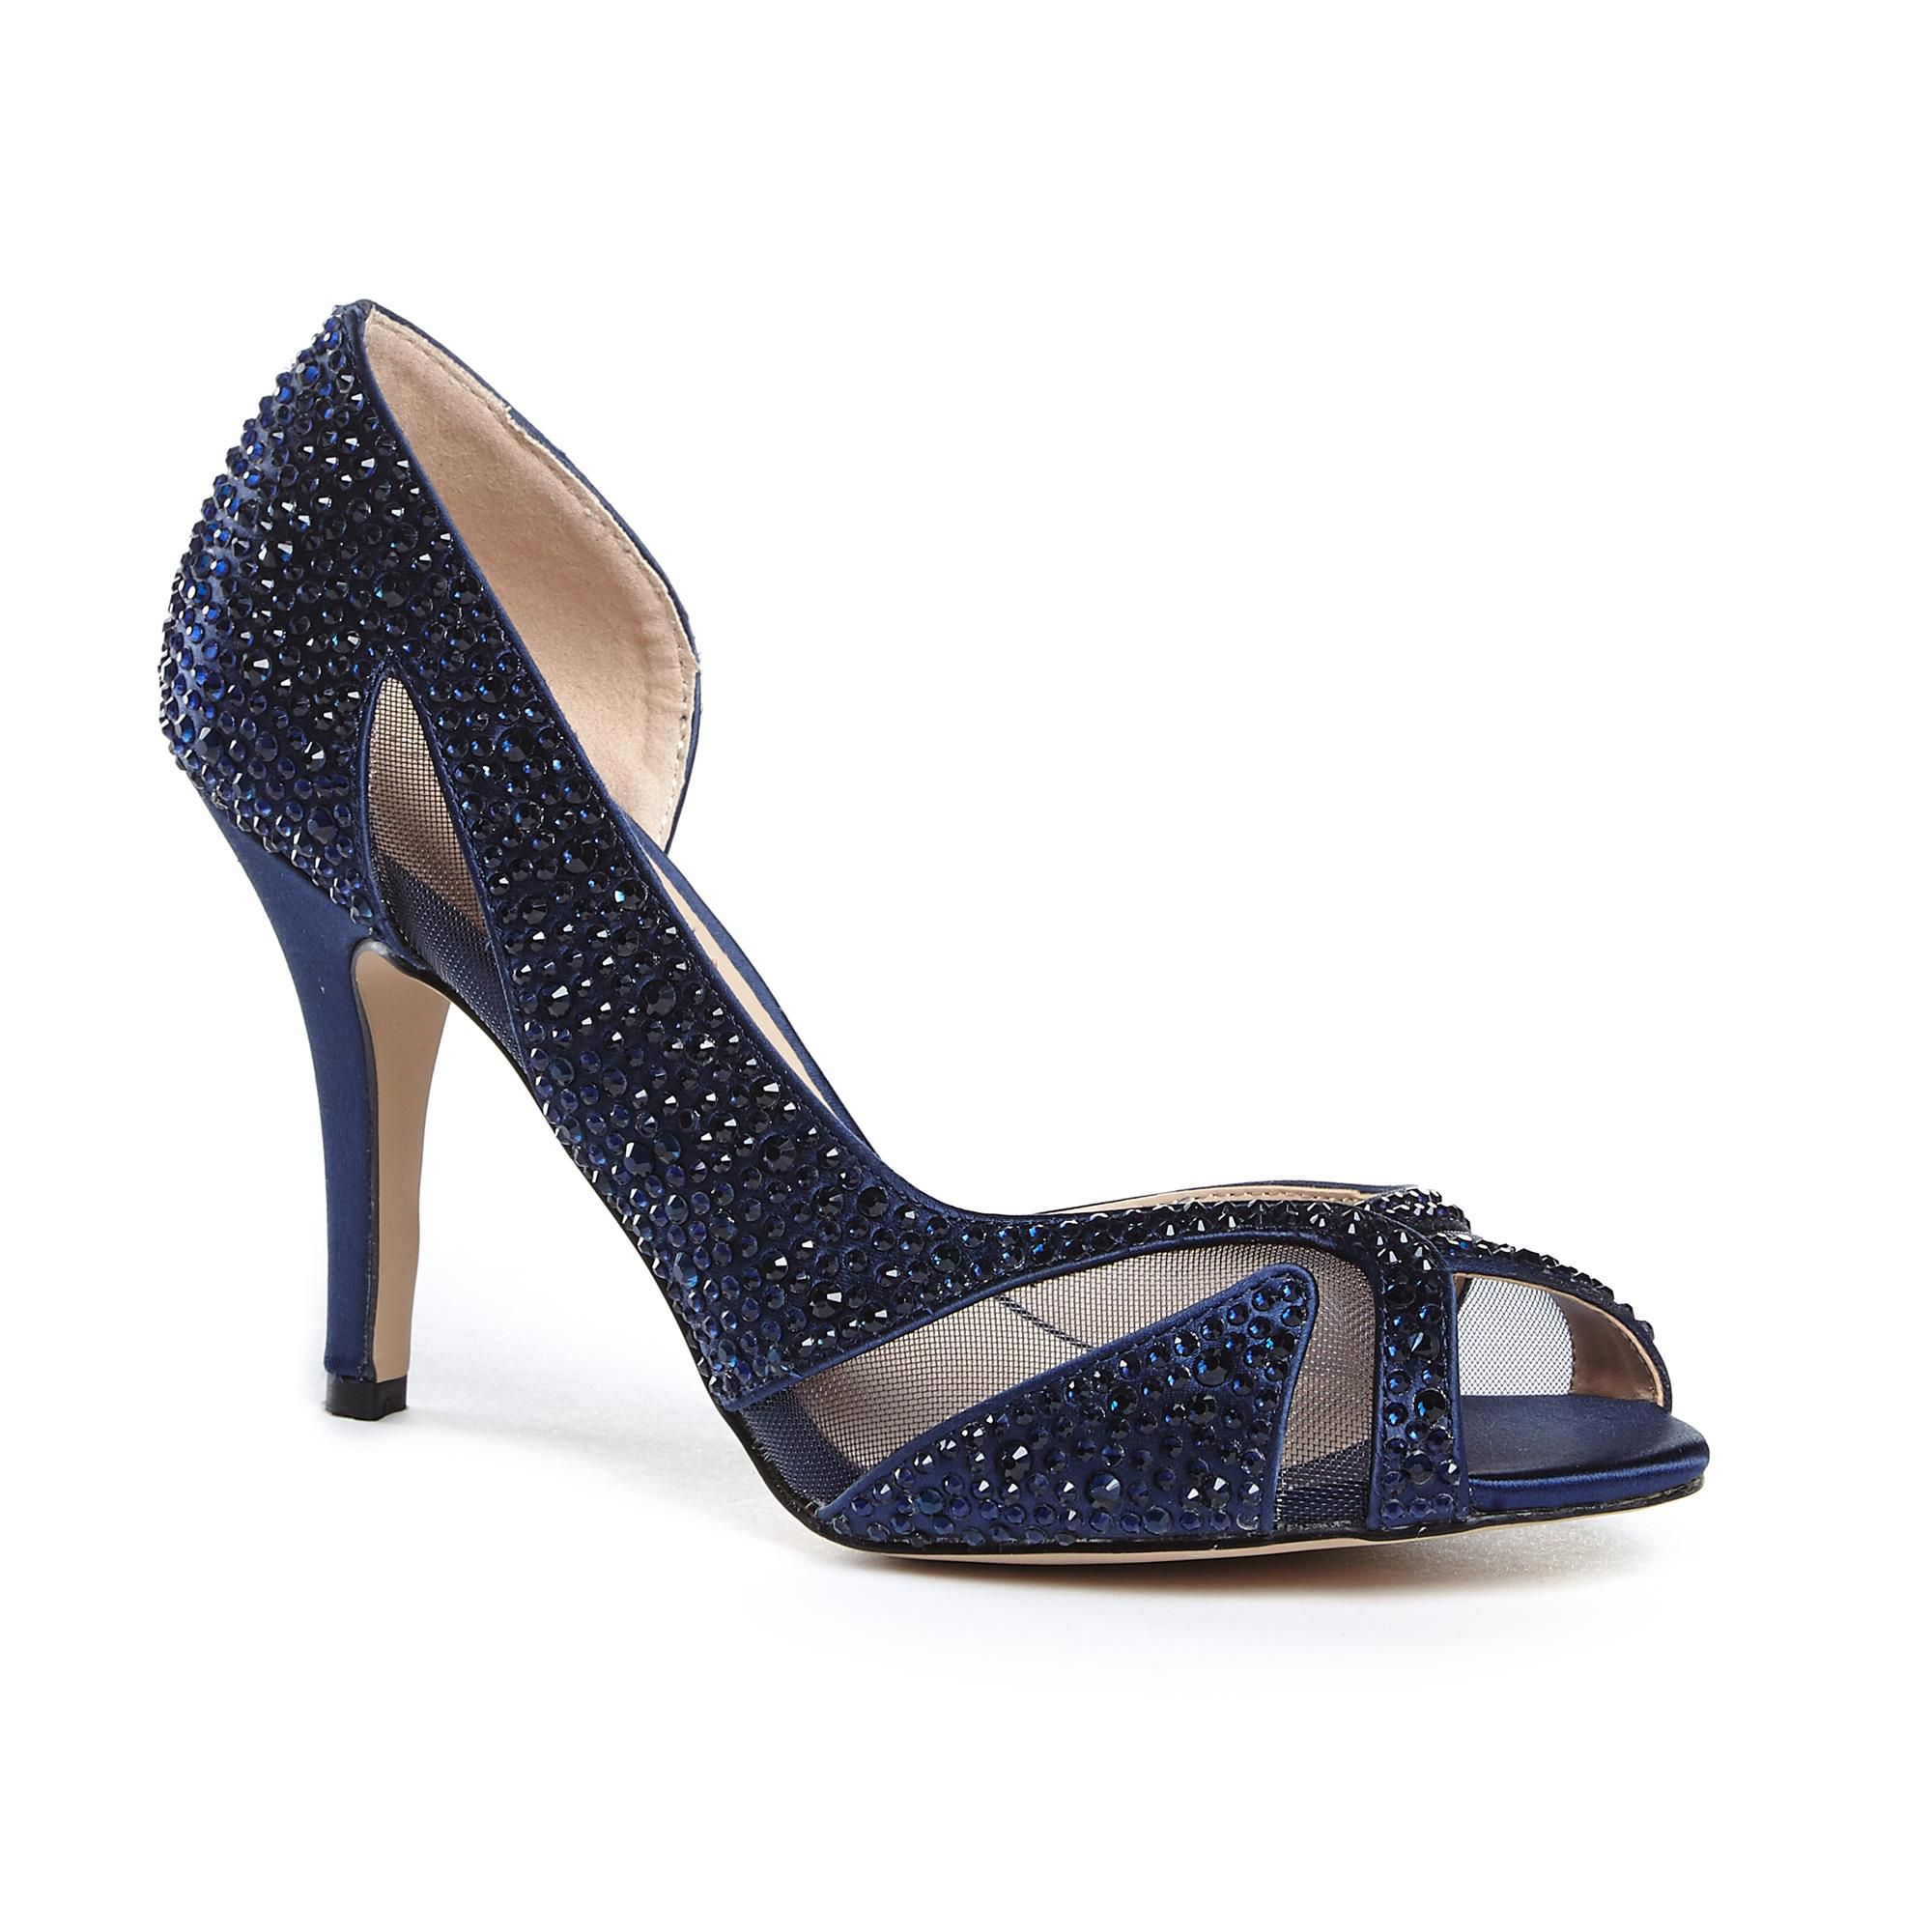 Blue wedding shoes at house of fraser paradox london pink catrina diamante peep toe shoes junglespirit Image collections